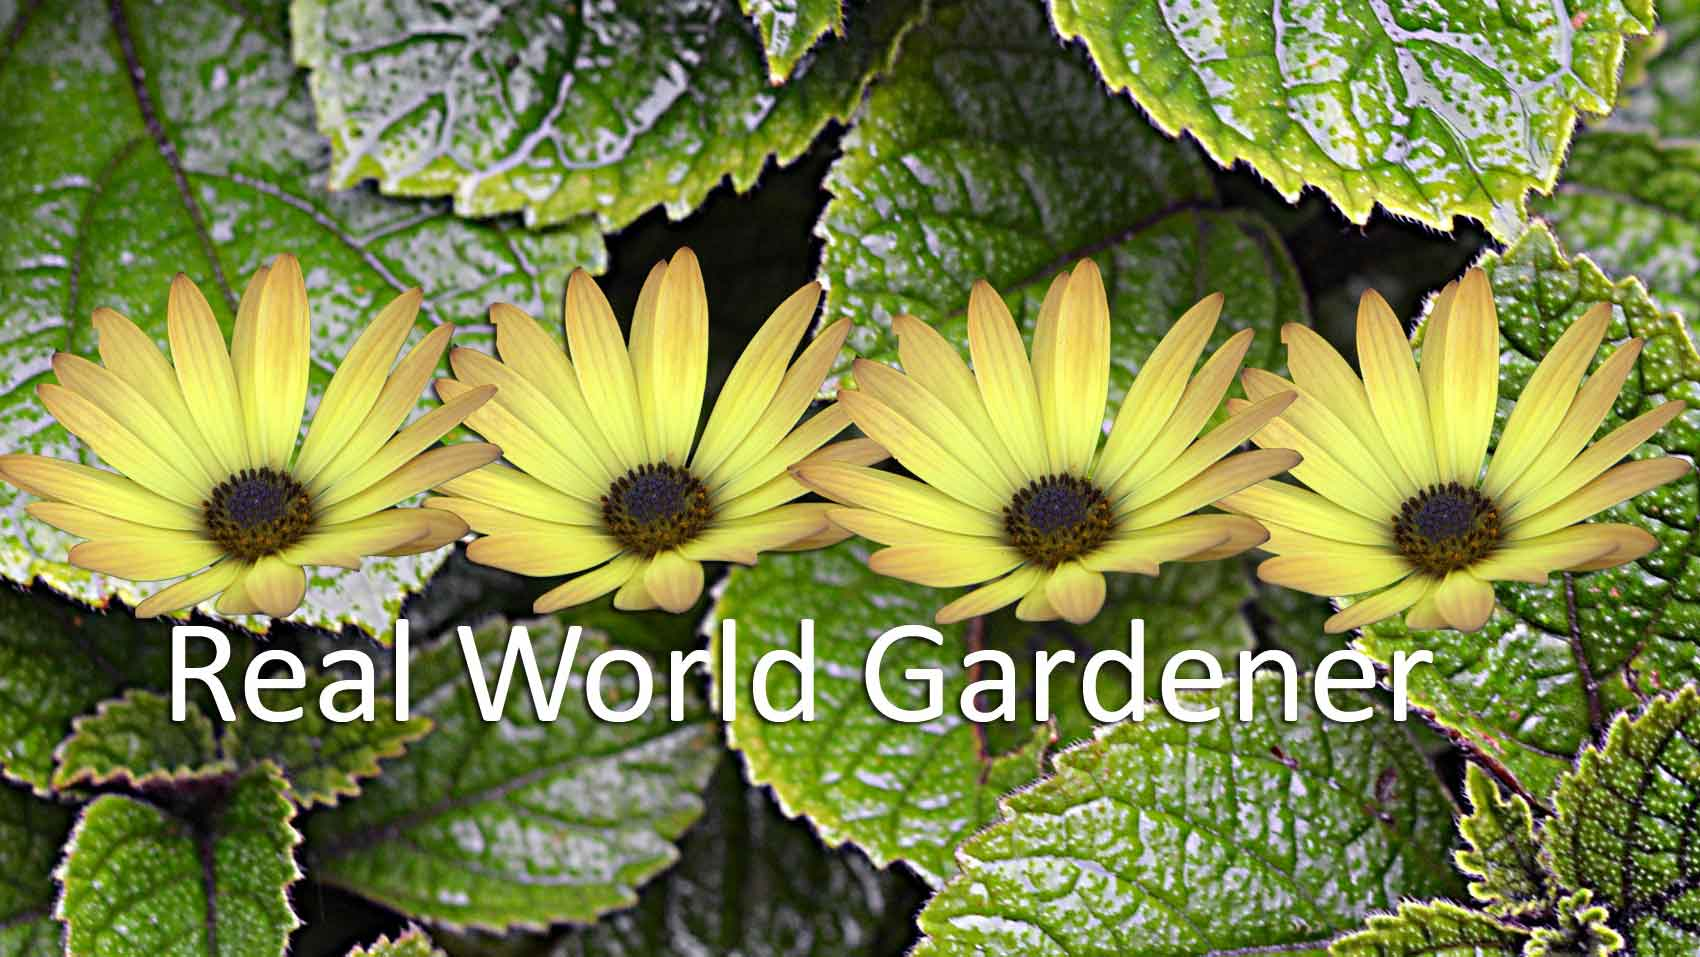 Real World Gardener Show Gardens part 2 in Design Elements